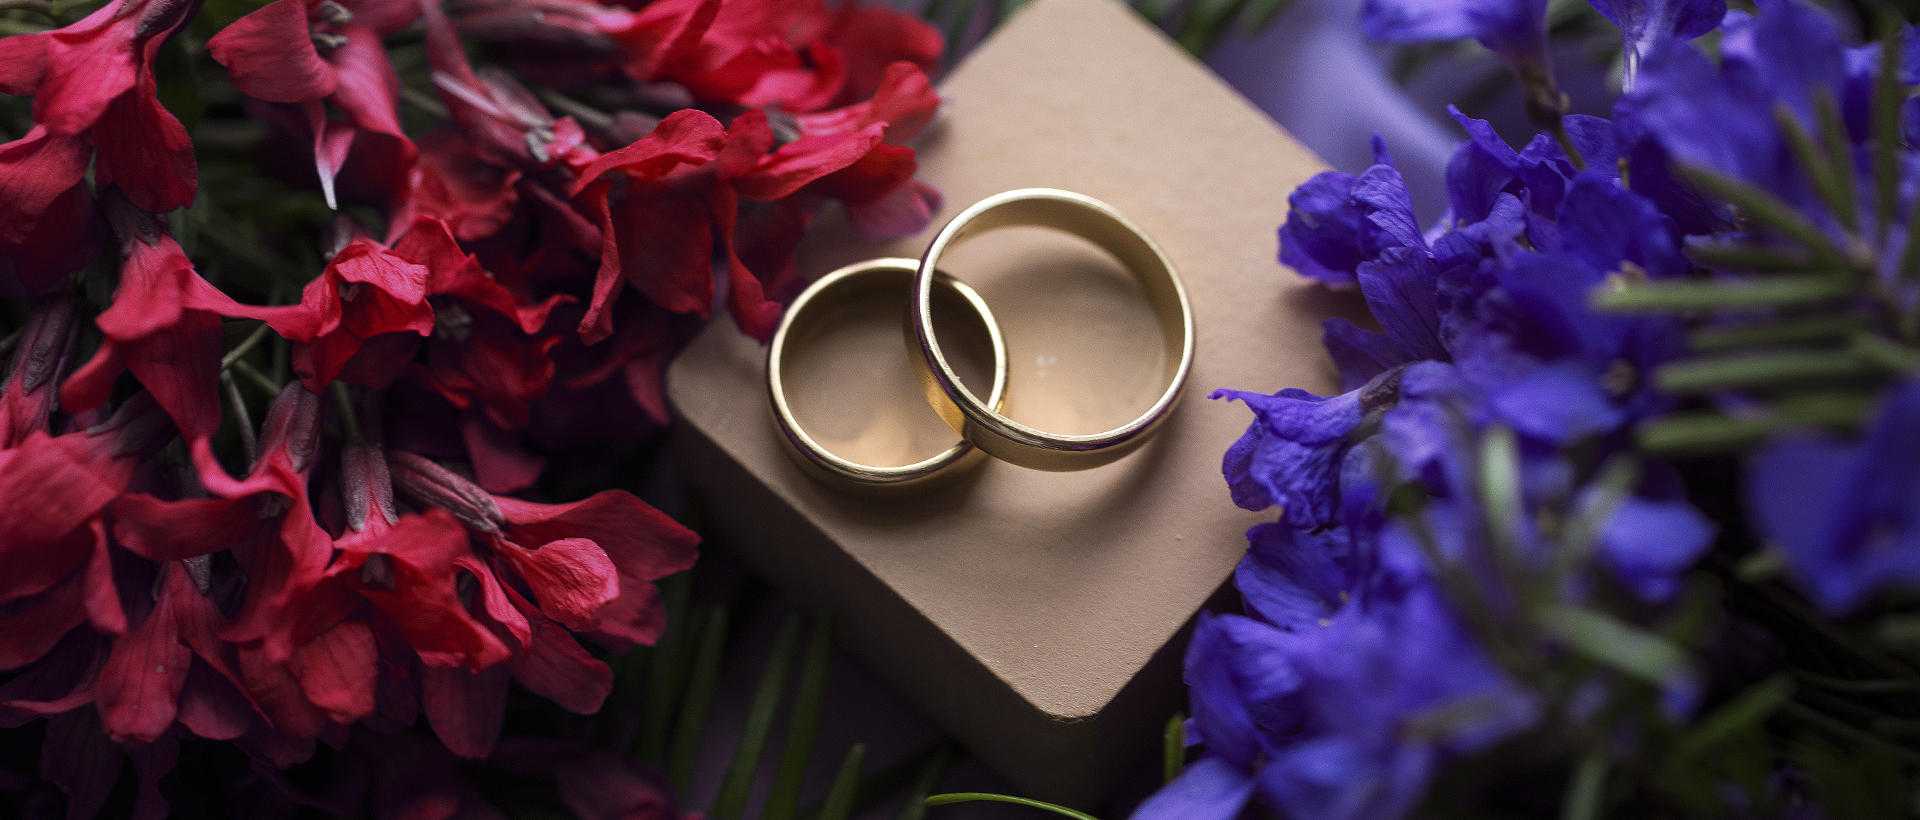 Who to Marry? Two rings, two different coloured flowers